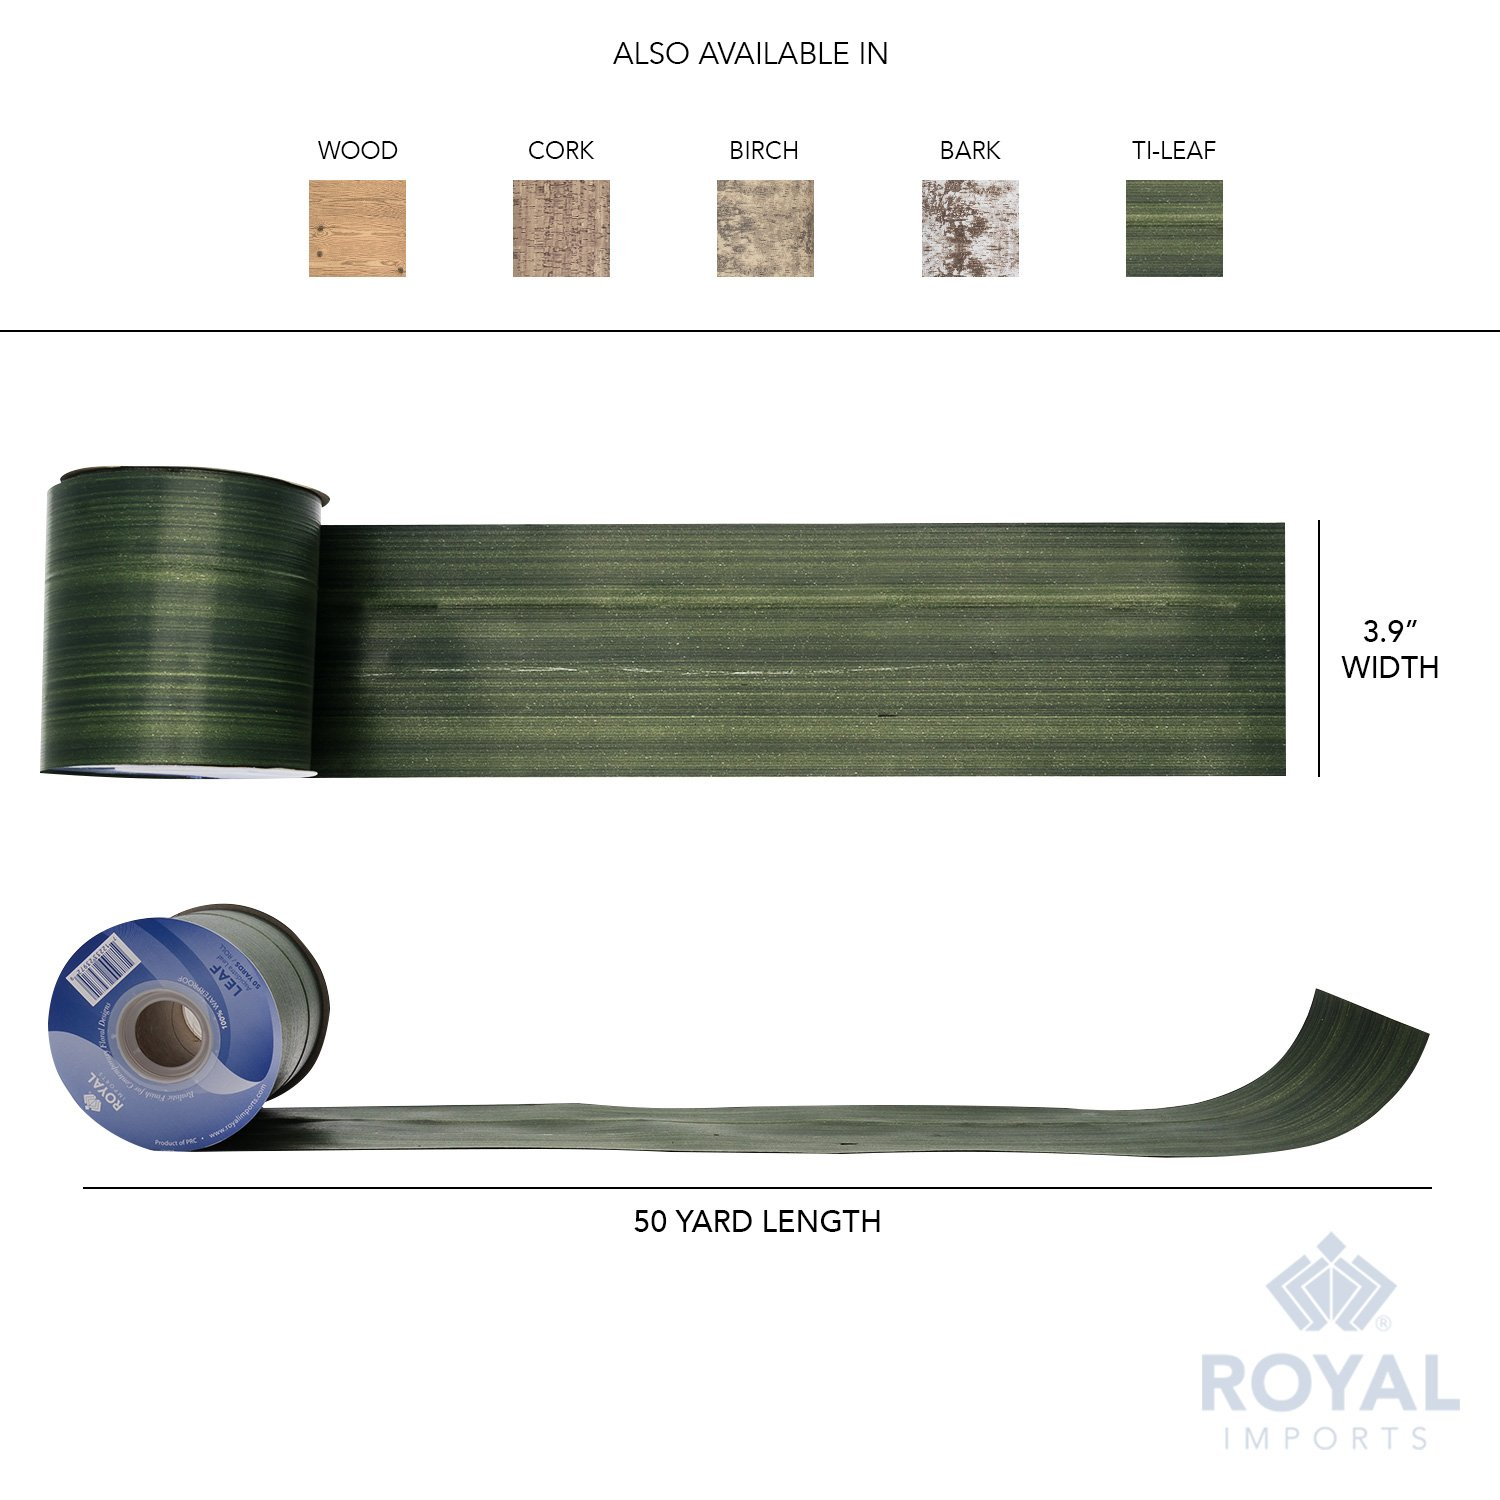 Green Aspidistra Ti Leaf Pattern Poly Satin Waterproof Ribbon 4'' (#100) Floral & Craft Decoration, 50 Yard Roll (150 FT Spool) Bulk, by Royal Imports by Royal Imports (Image #6)